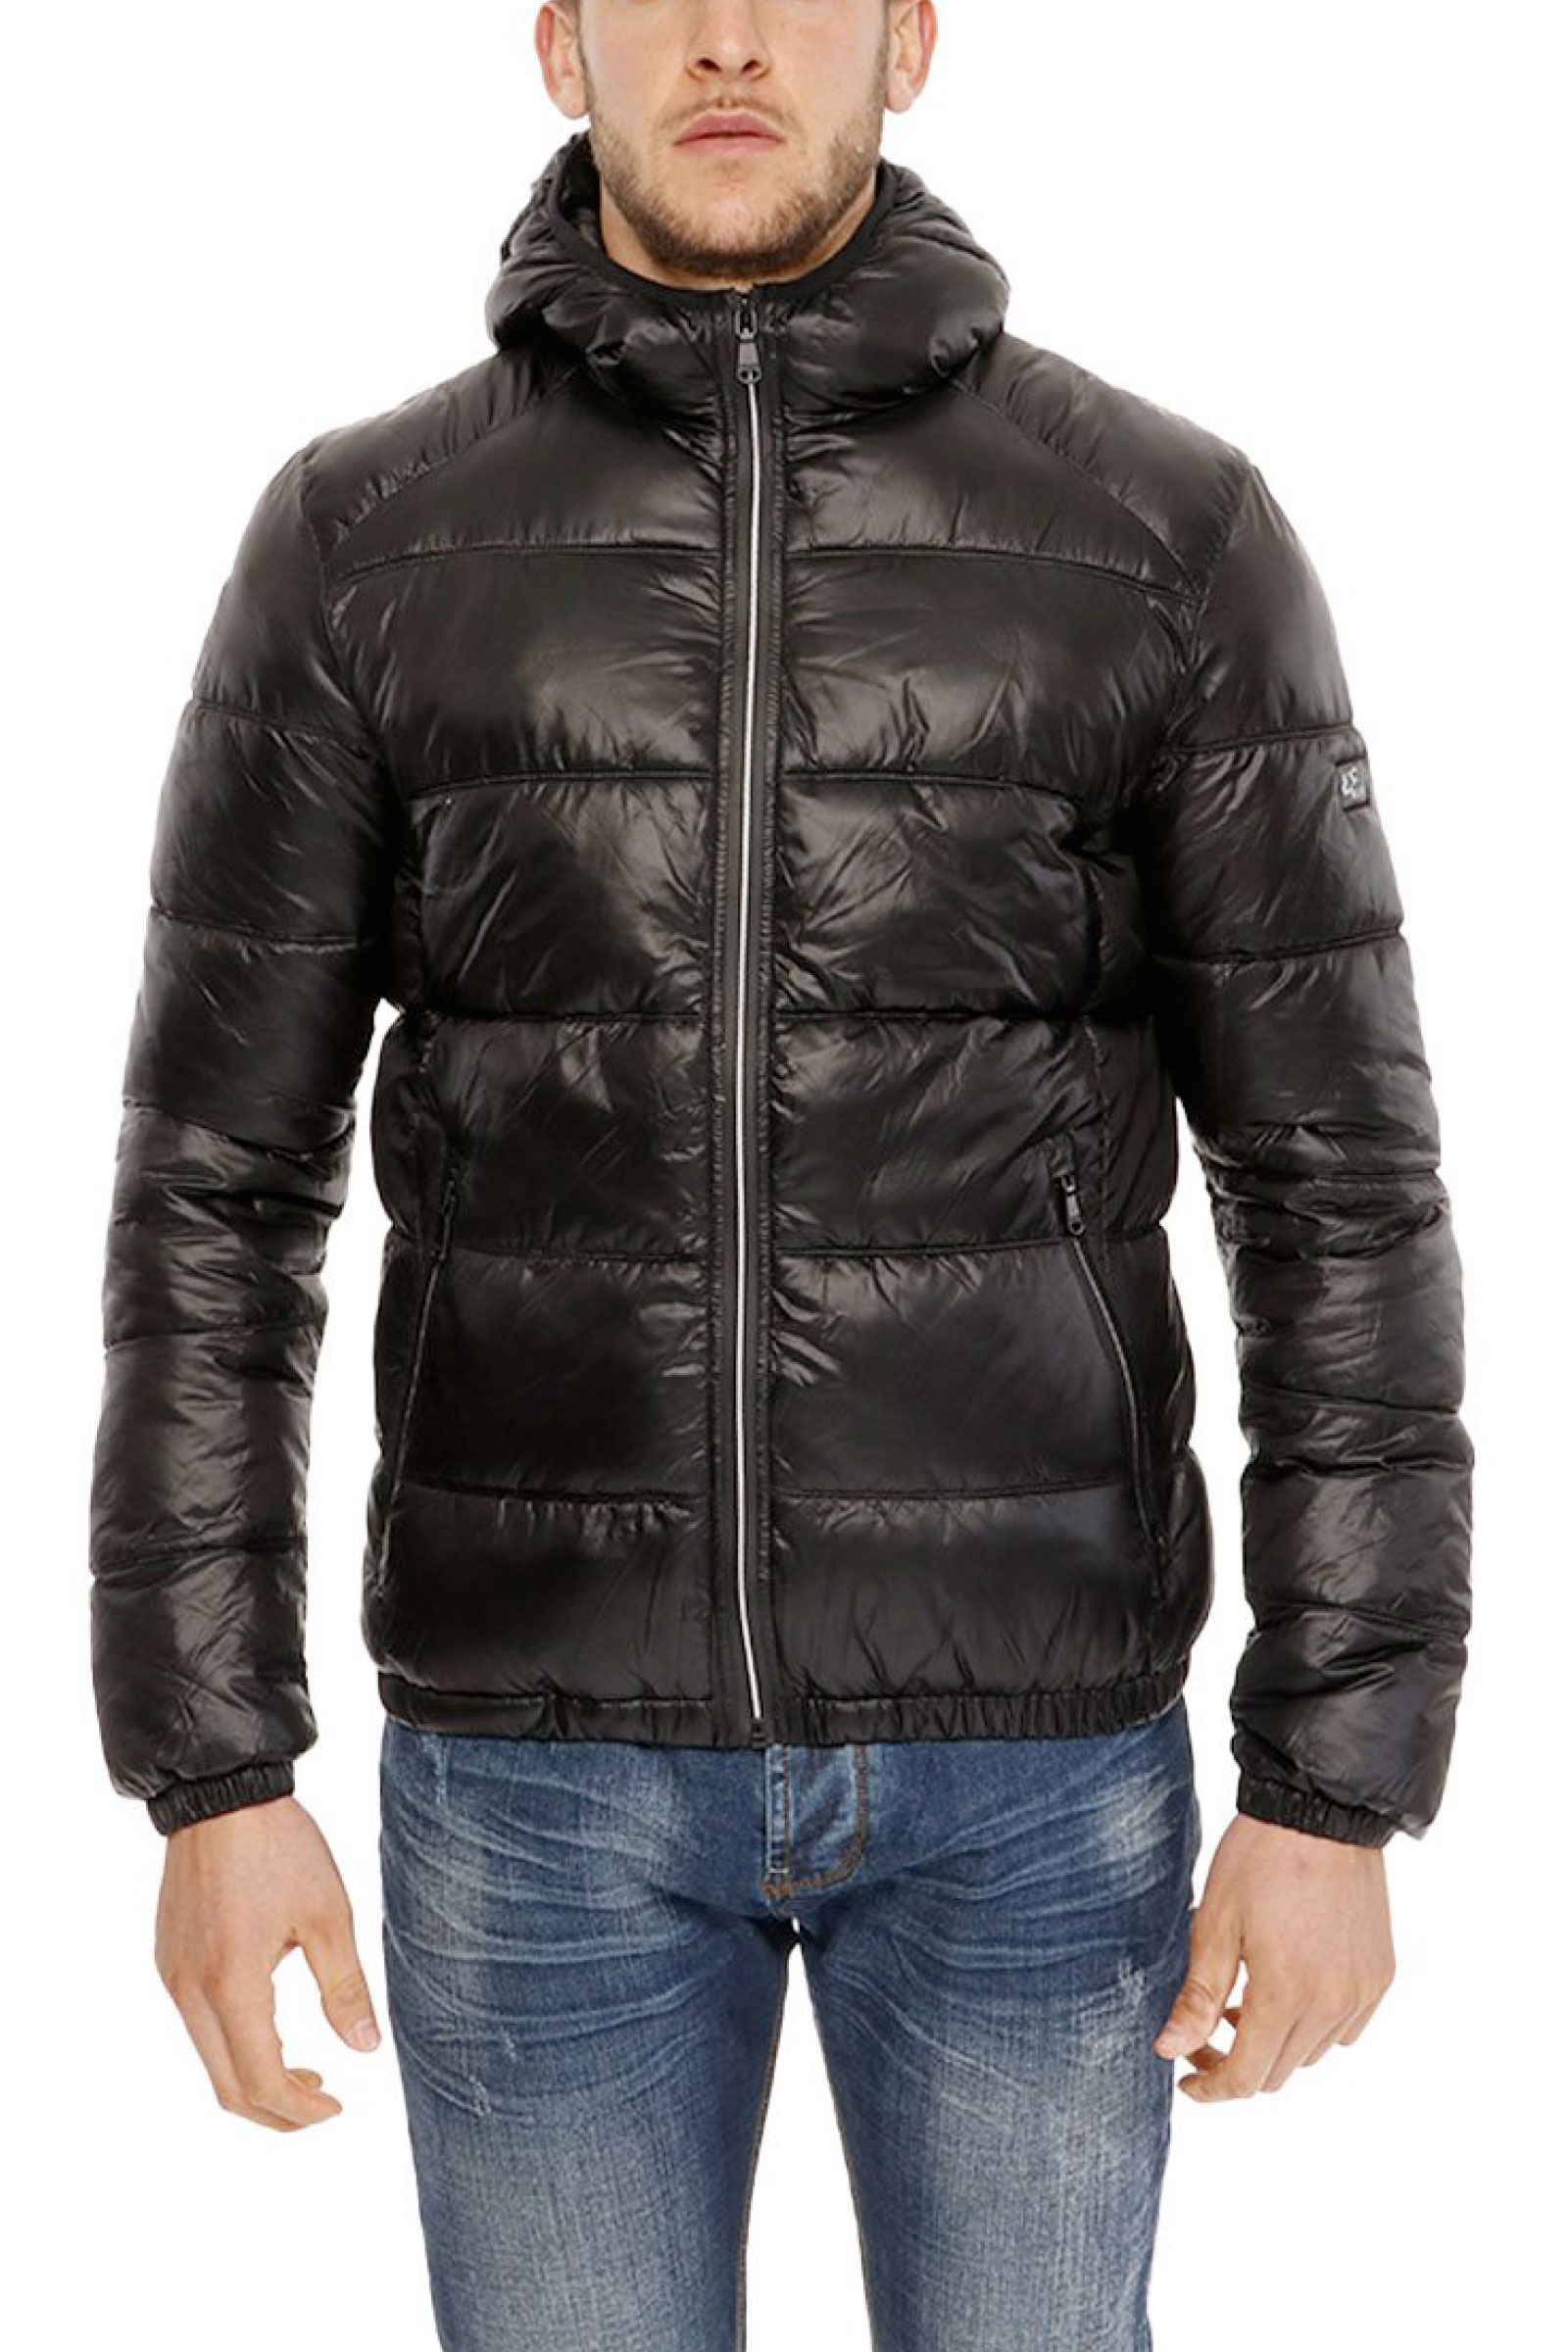 YES ZEE Men's Jacket YES.ZEE | Jacket | J839 M9000801